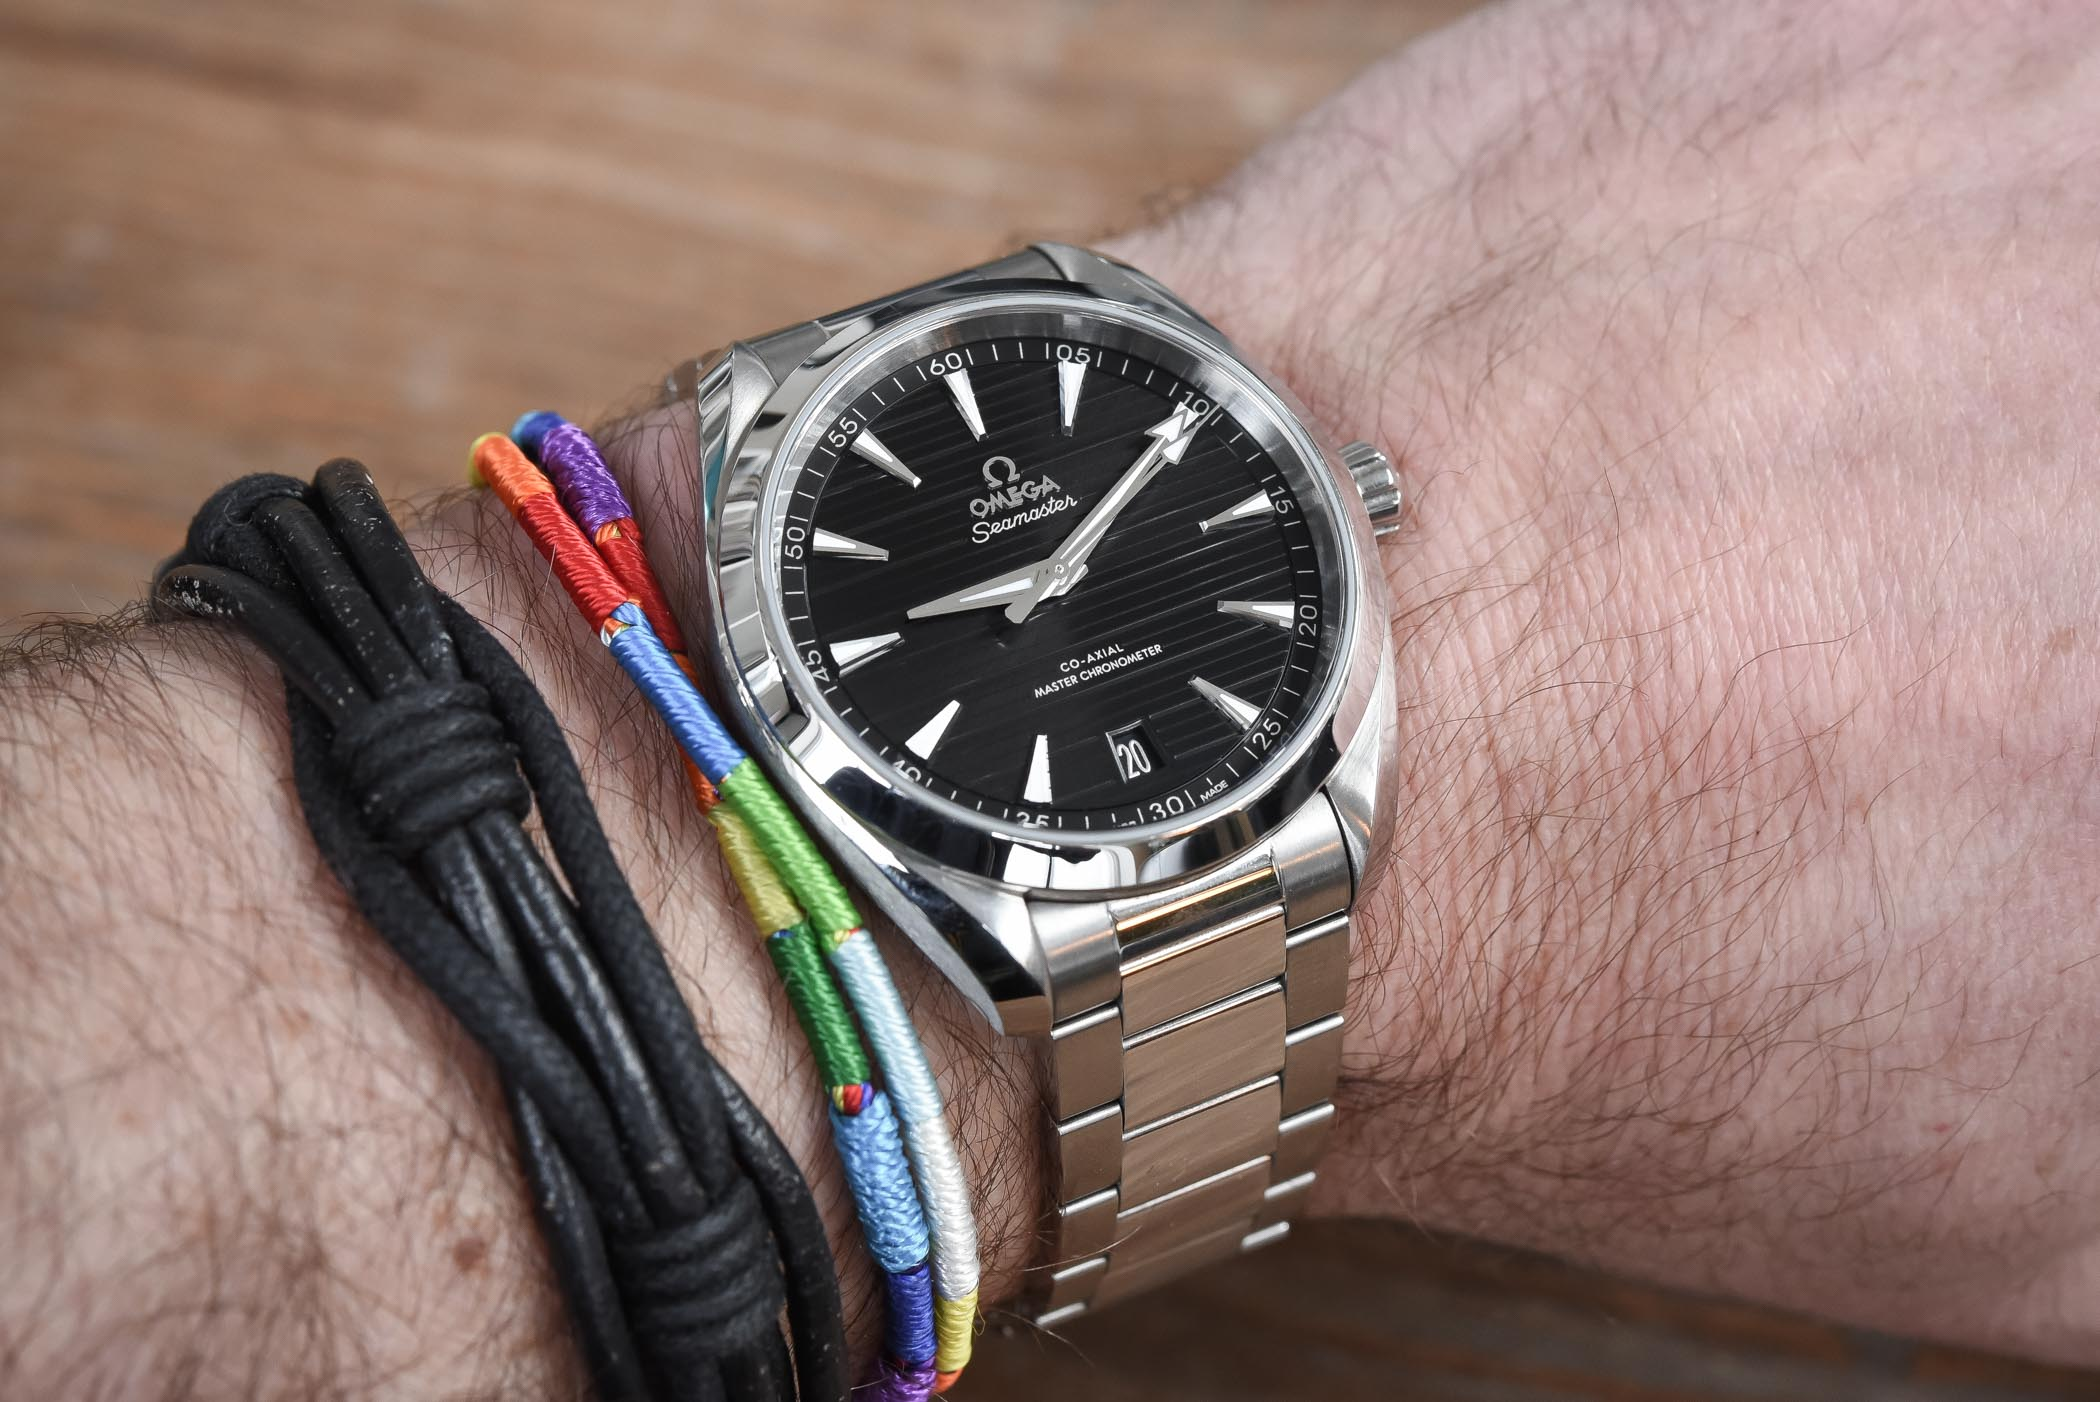 Omega Seamaster Aqua Terra 150m 41mm - Review